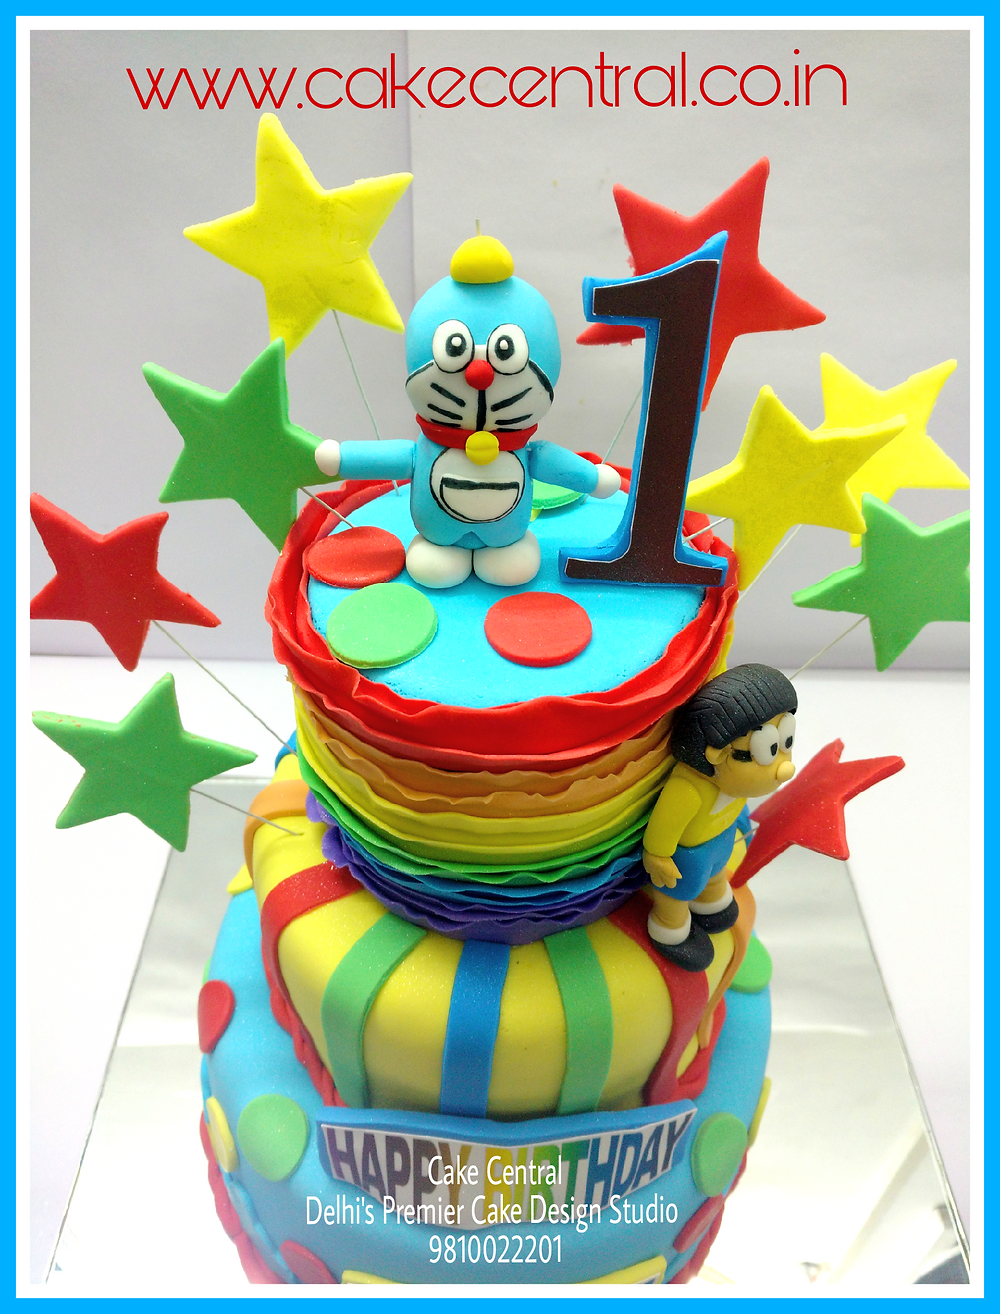 Doraemon Birthday Cake , Fondant themed Doraemon Cake by Cake Central Delhi . New Delhi